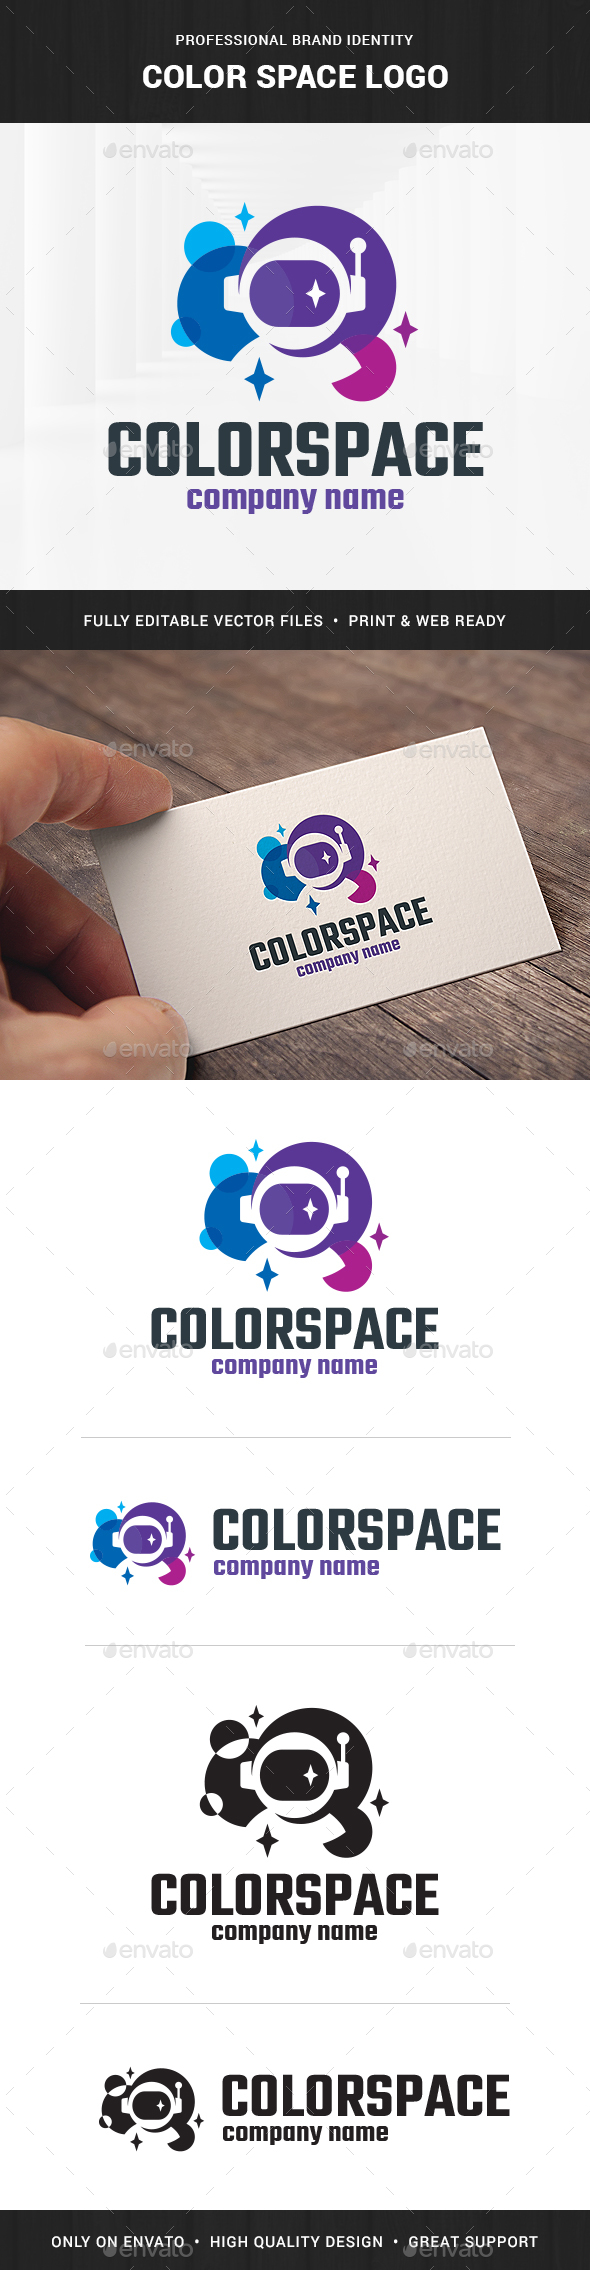 Color Space Logo Template